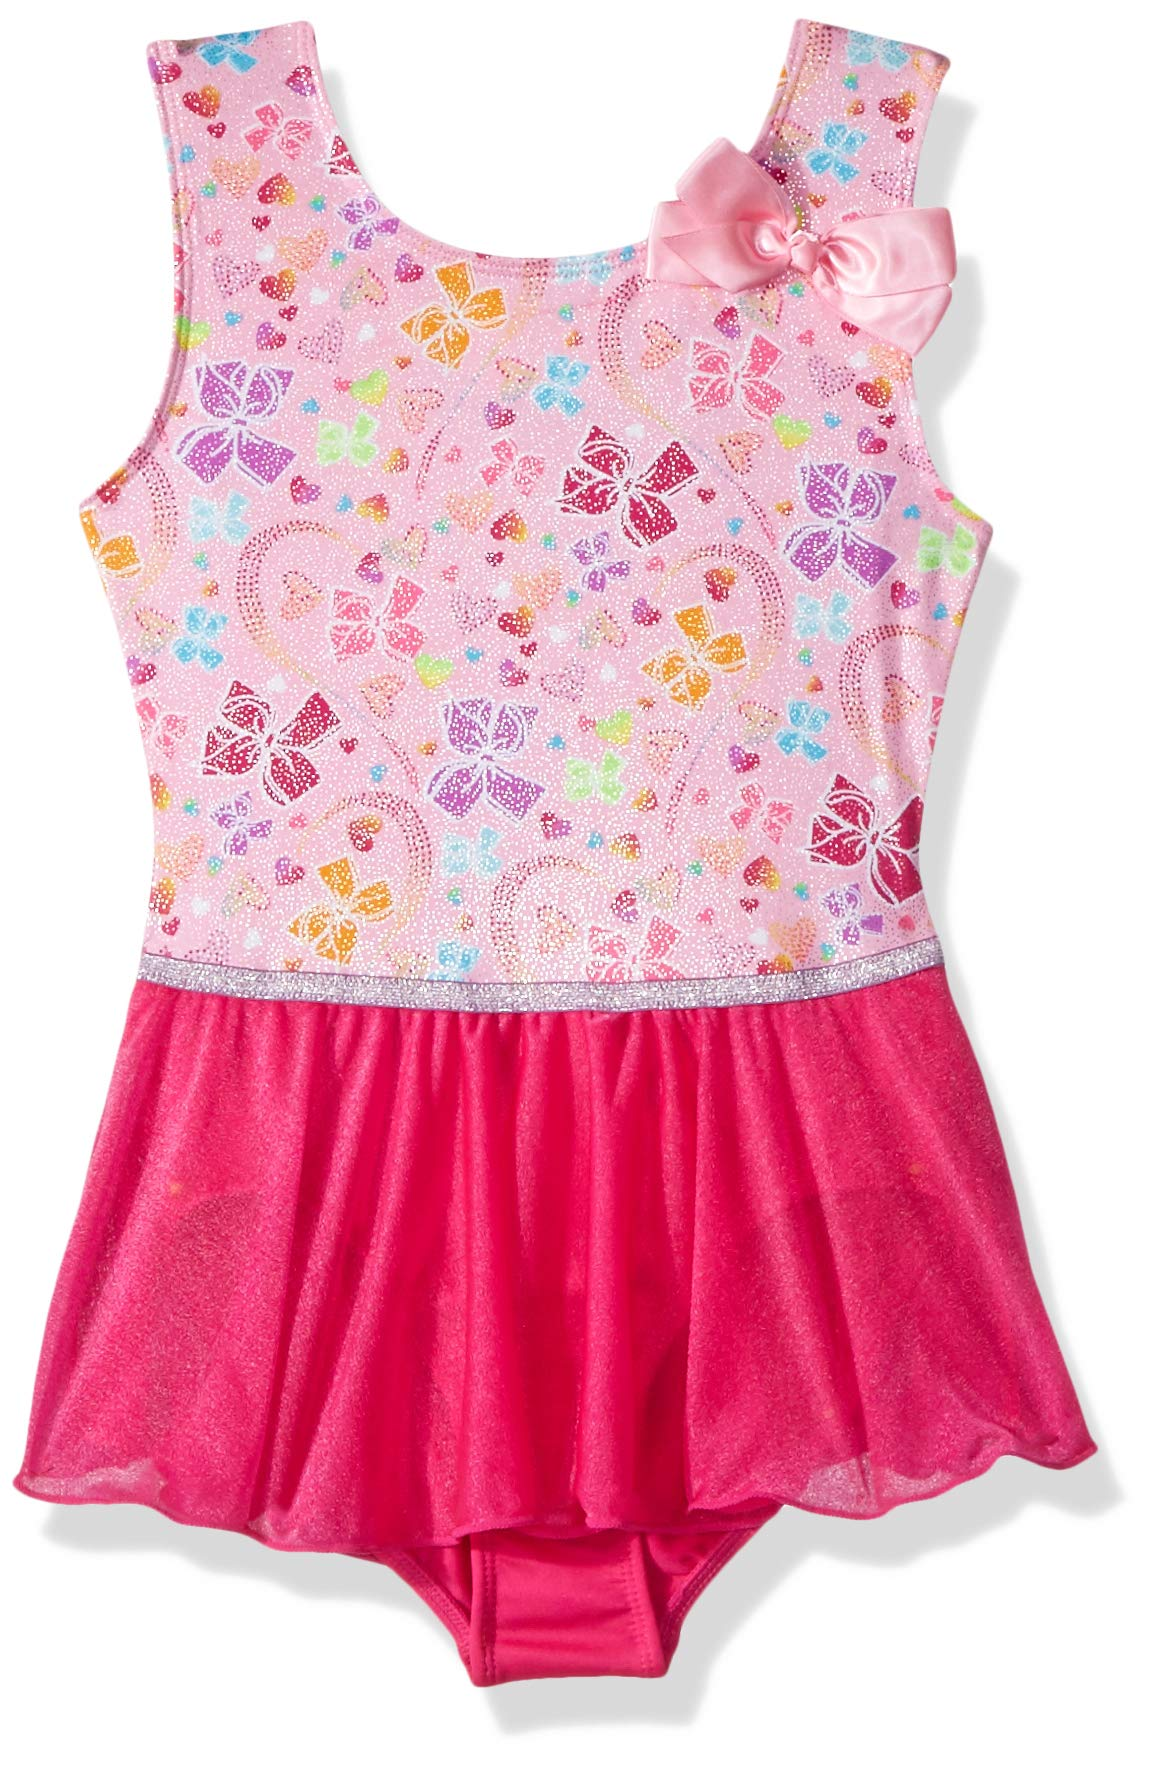 Nickelodeon Girls' Big Rainbow Bows Tank Dance Dress, Sugar Pink Pretty, Small